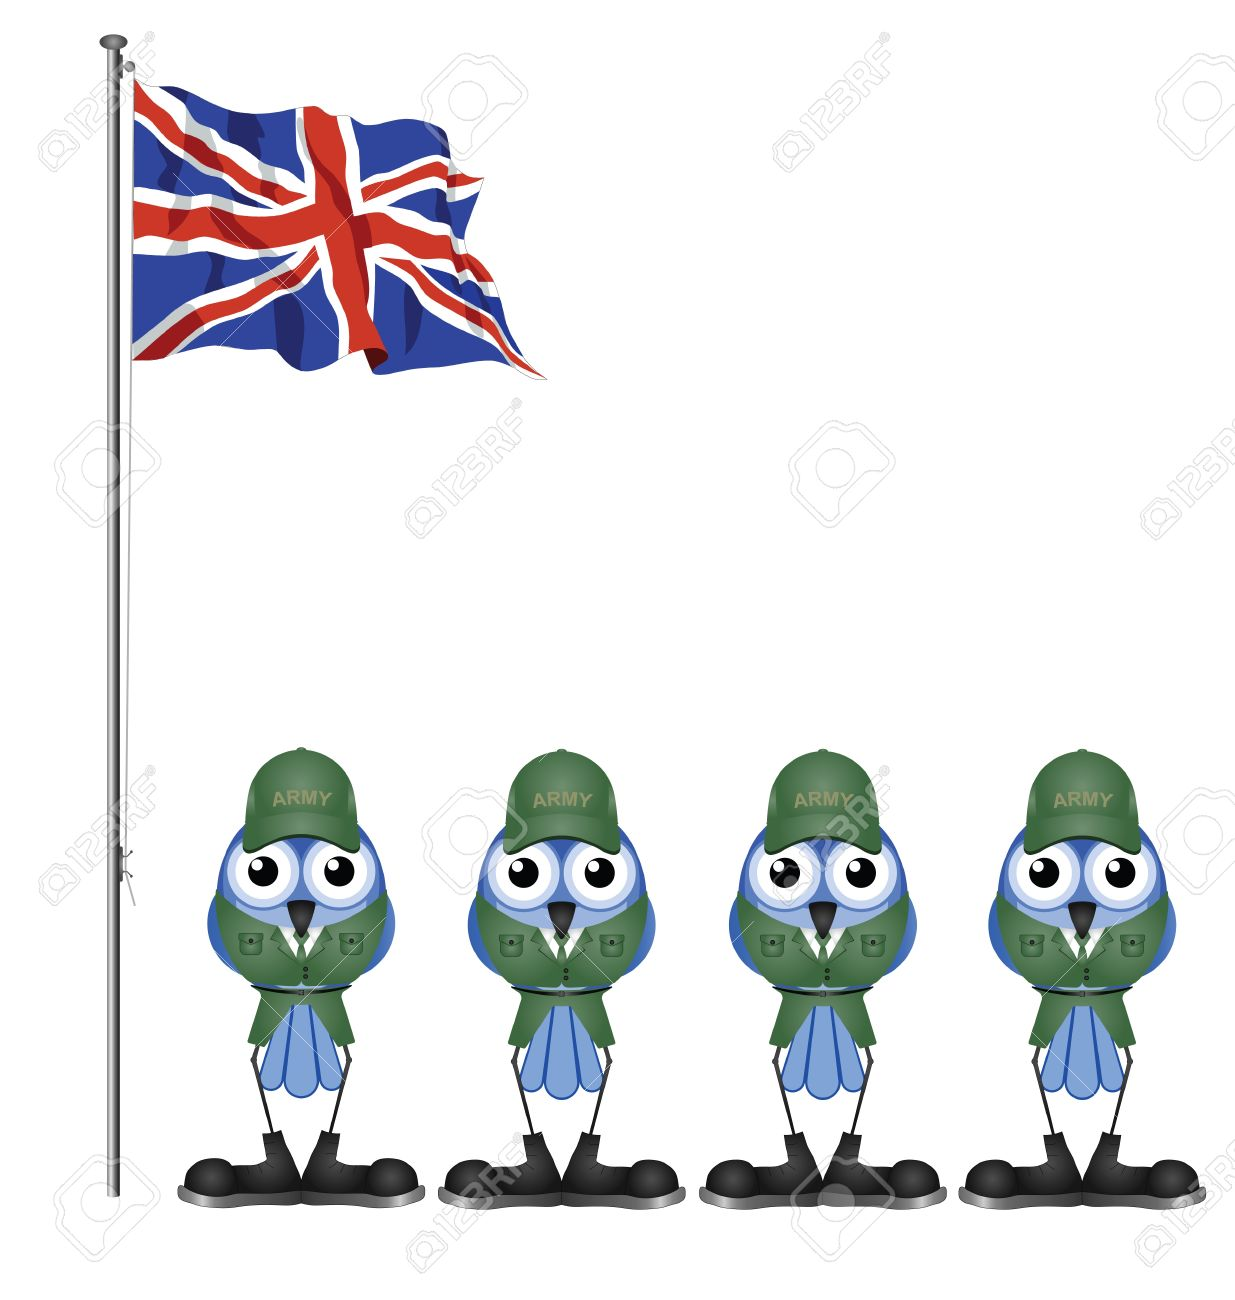 UK Soldiers On Parade Ground Isolated On White Background Royalty.